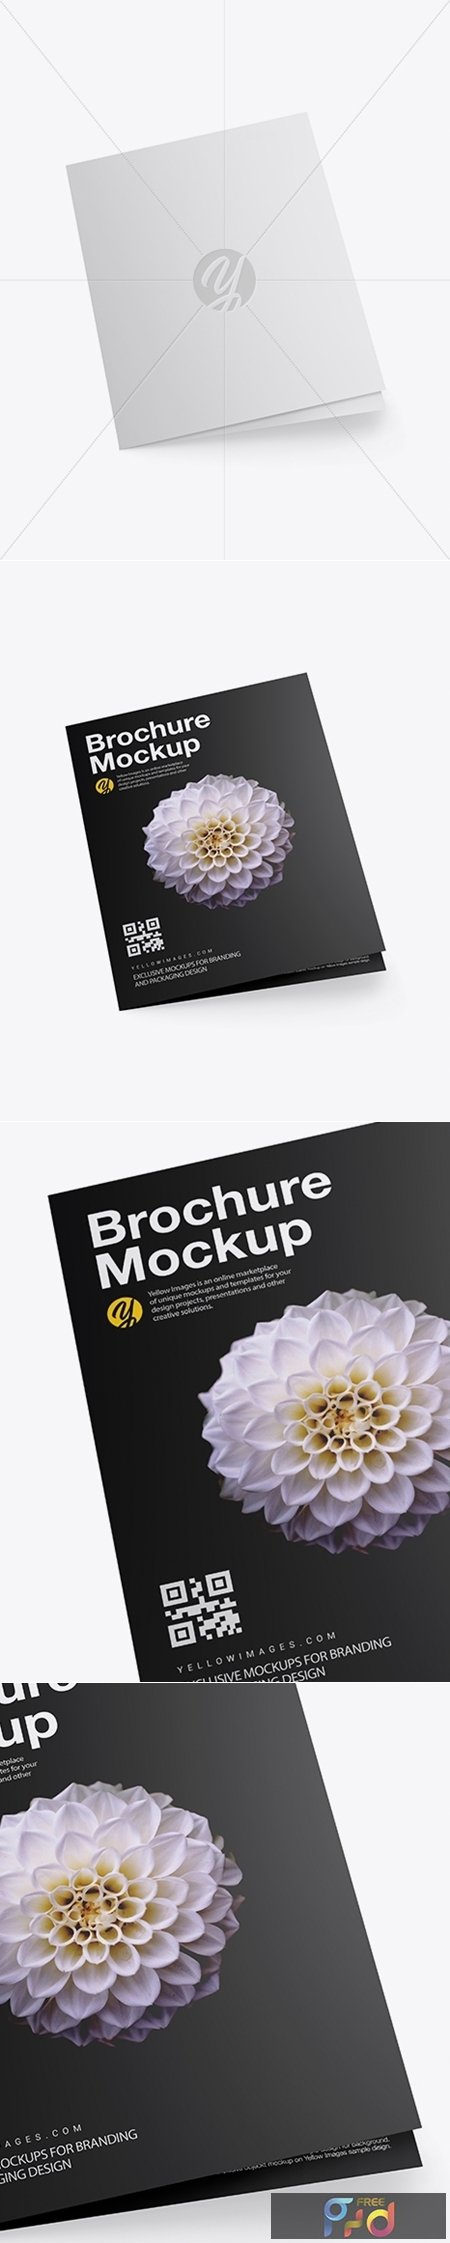 Download Mockup Phone Psd Yellowimages